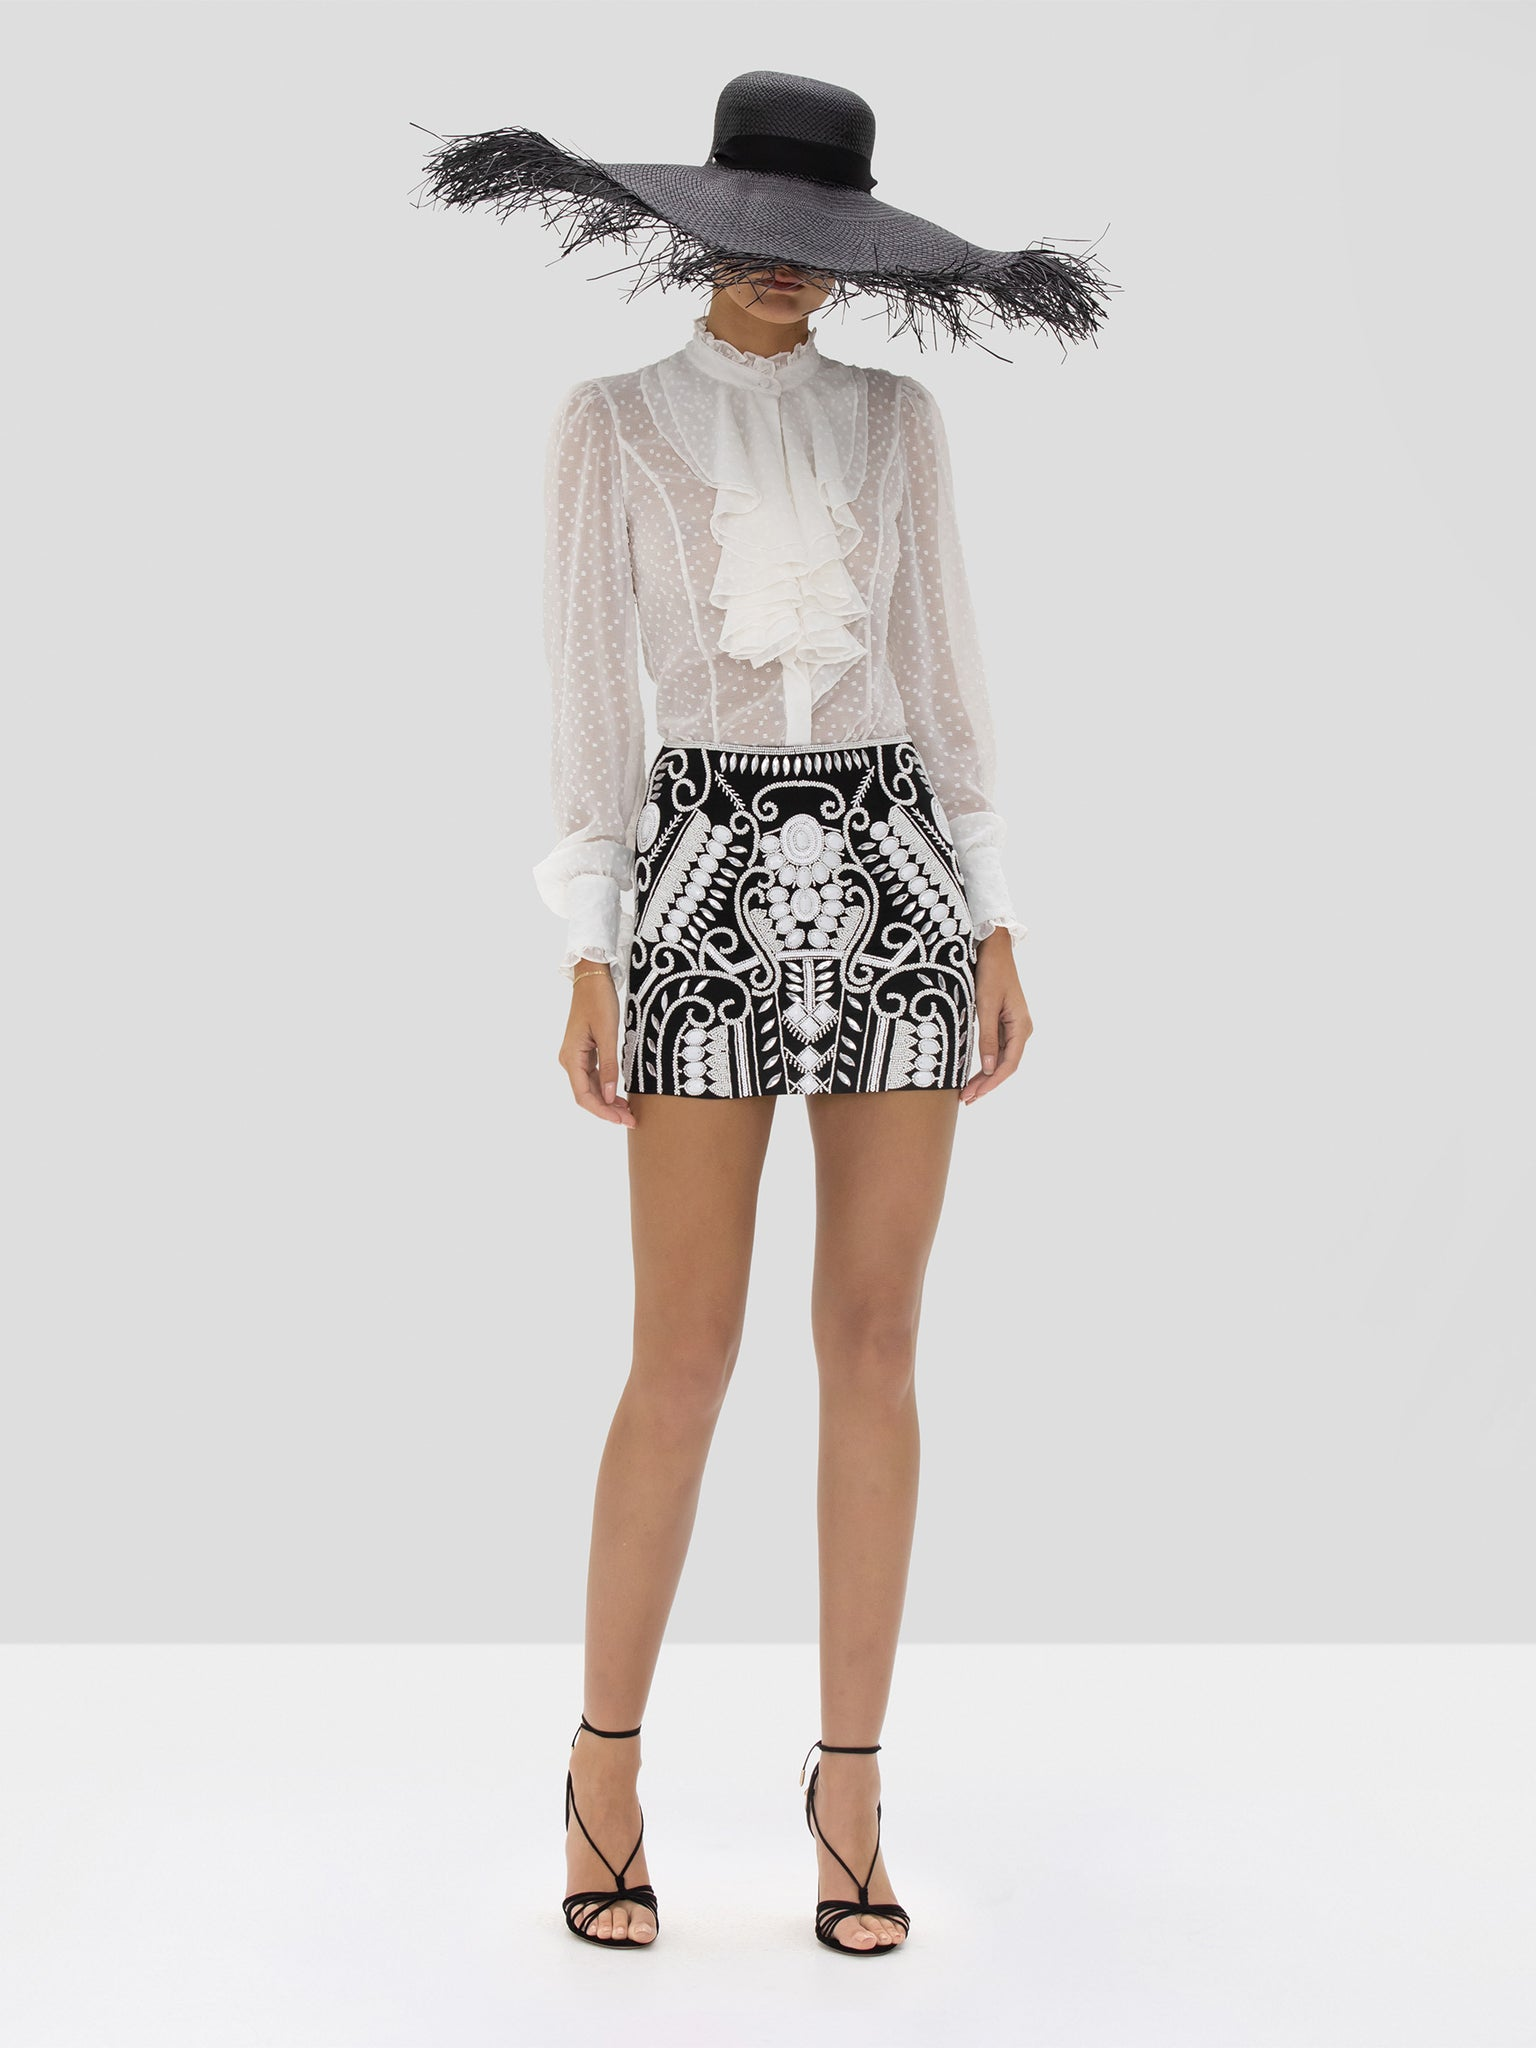 Alexis Benham Top in White and Cadelle Skirt in Black White Embroidery from the Spring Summer 2020 Collection